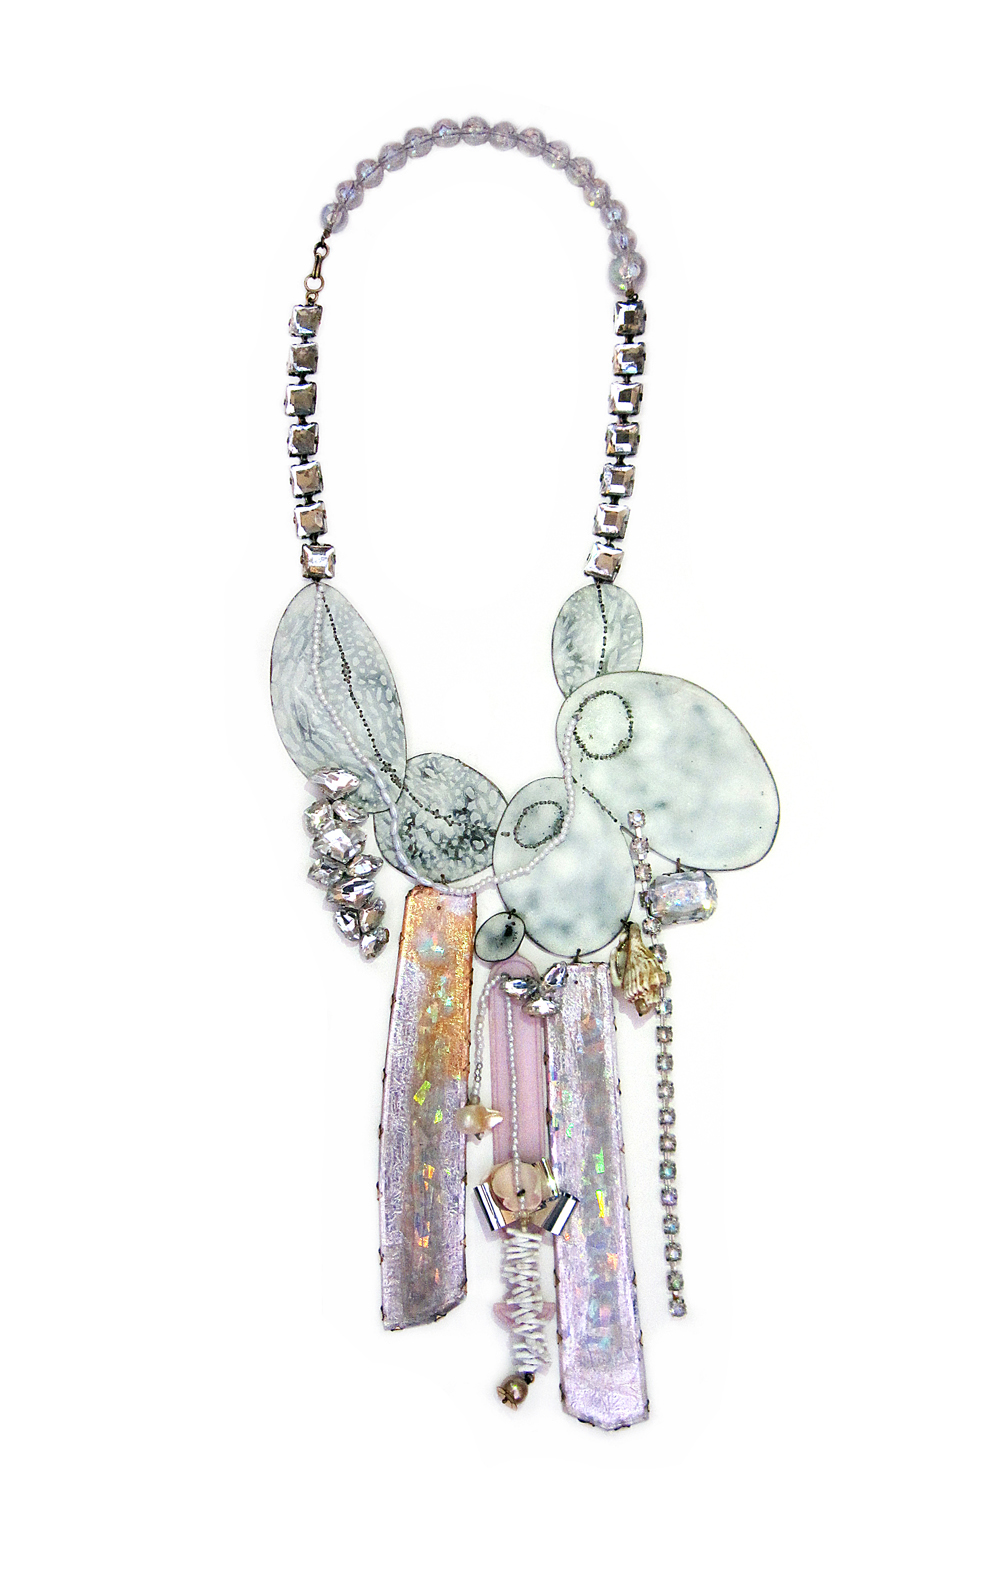 Satomi Kawai & Nikki Couppee, Neogems (Necklace), Plastic, etched copper, resin, pigment, sterling silver, brass, plexiglass, found shells, faux and real pearls, faux silver foil, hologram laminate